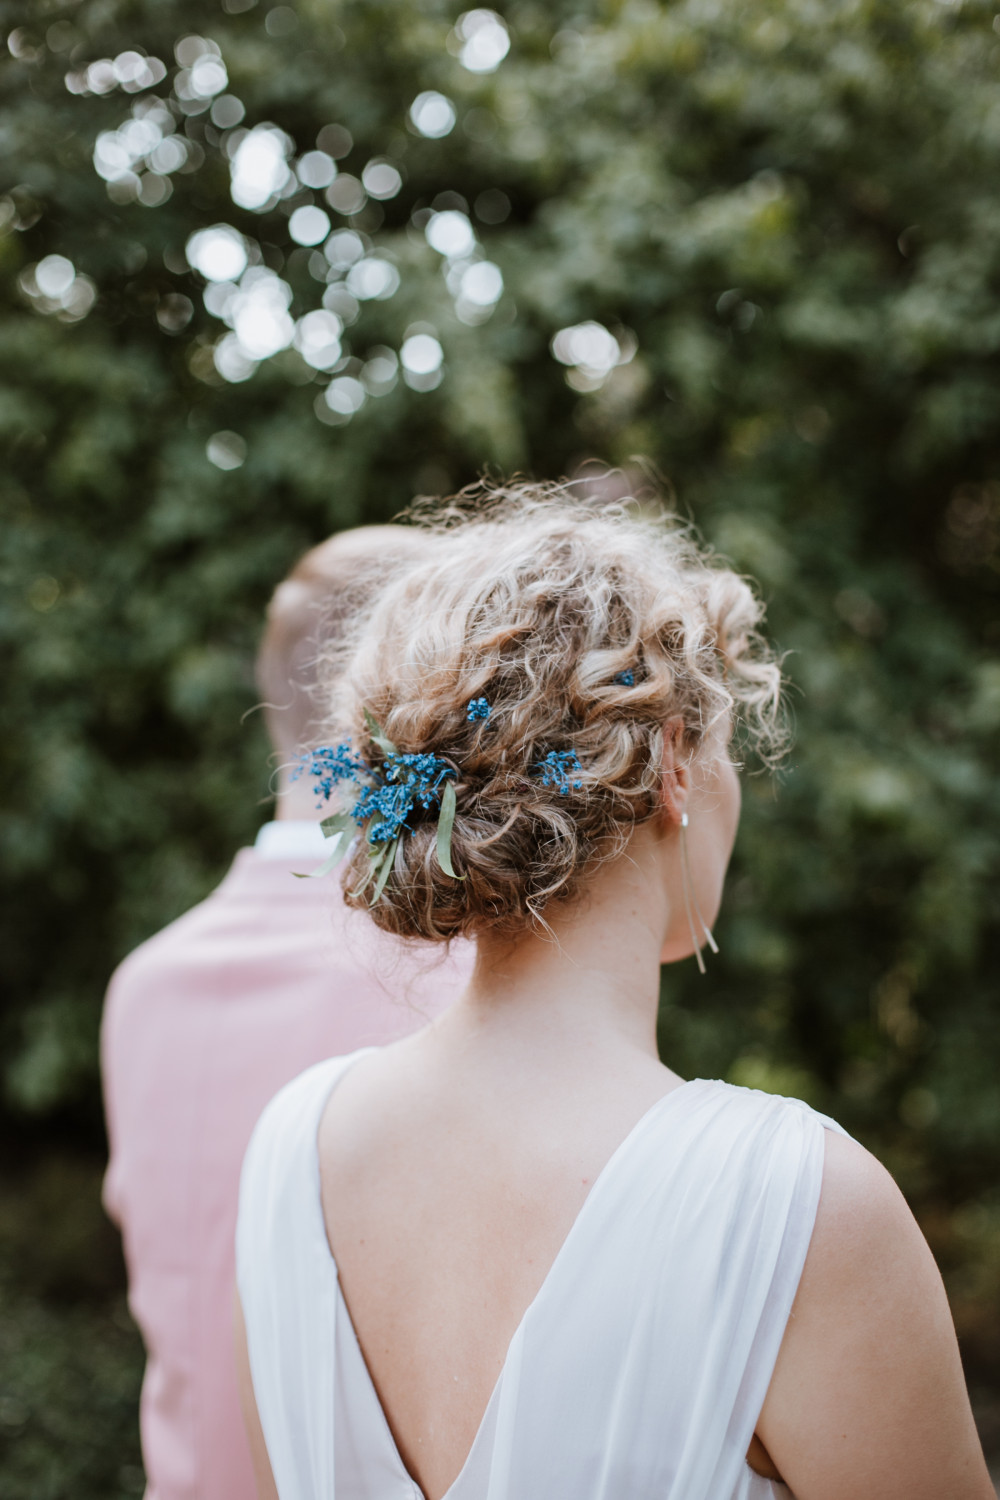 Bride Regina - Make Me Bridal Artist: let's hair. Photography by: Neringa Sunday. #bohemian #classic #curls #gypsophila #updo #lowupdo #relaxedupdo #hairup #braidedupdo #weddinghair #bridalhairstylist #hairup #bohobride #bride #relaxedhairup #realbride #naturalbride #curlyhair #curlyupdo #curlybun #curlyupdo #realflowers